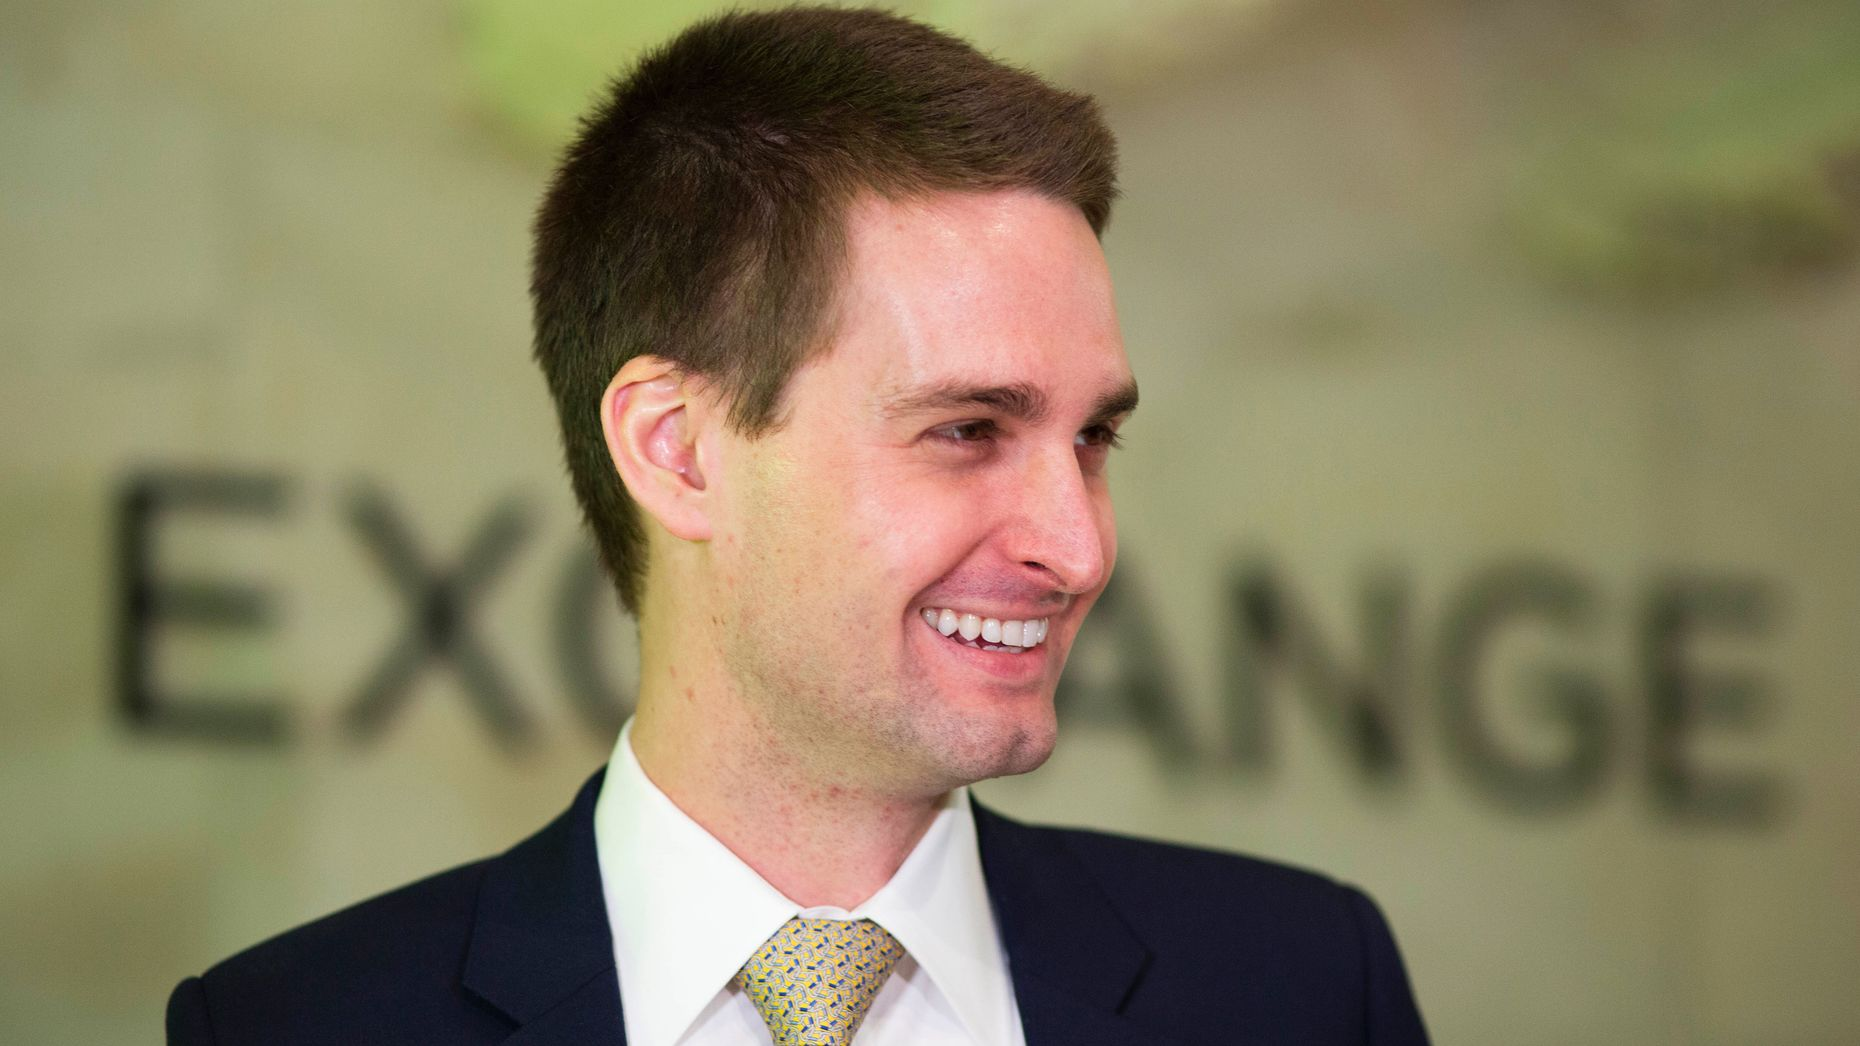 Snap CEO Evan Spiegel. Photo by AP